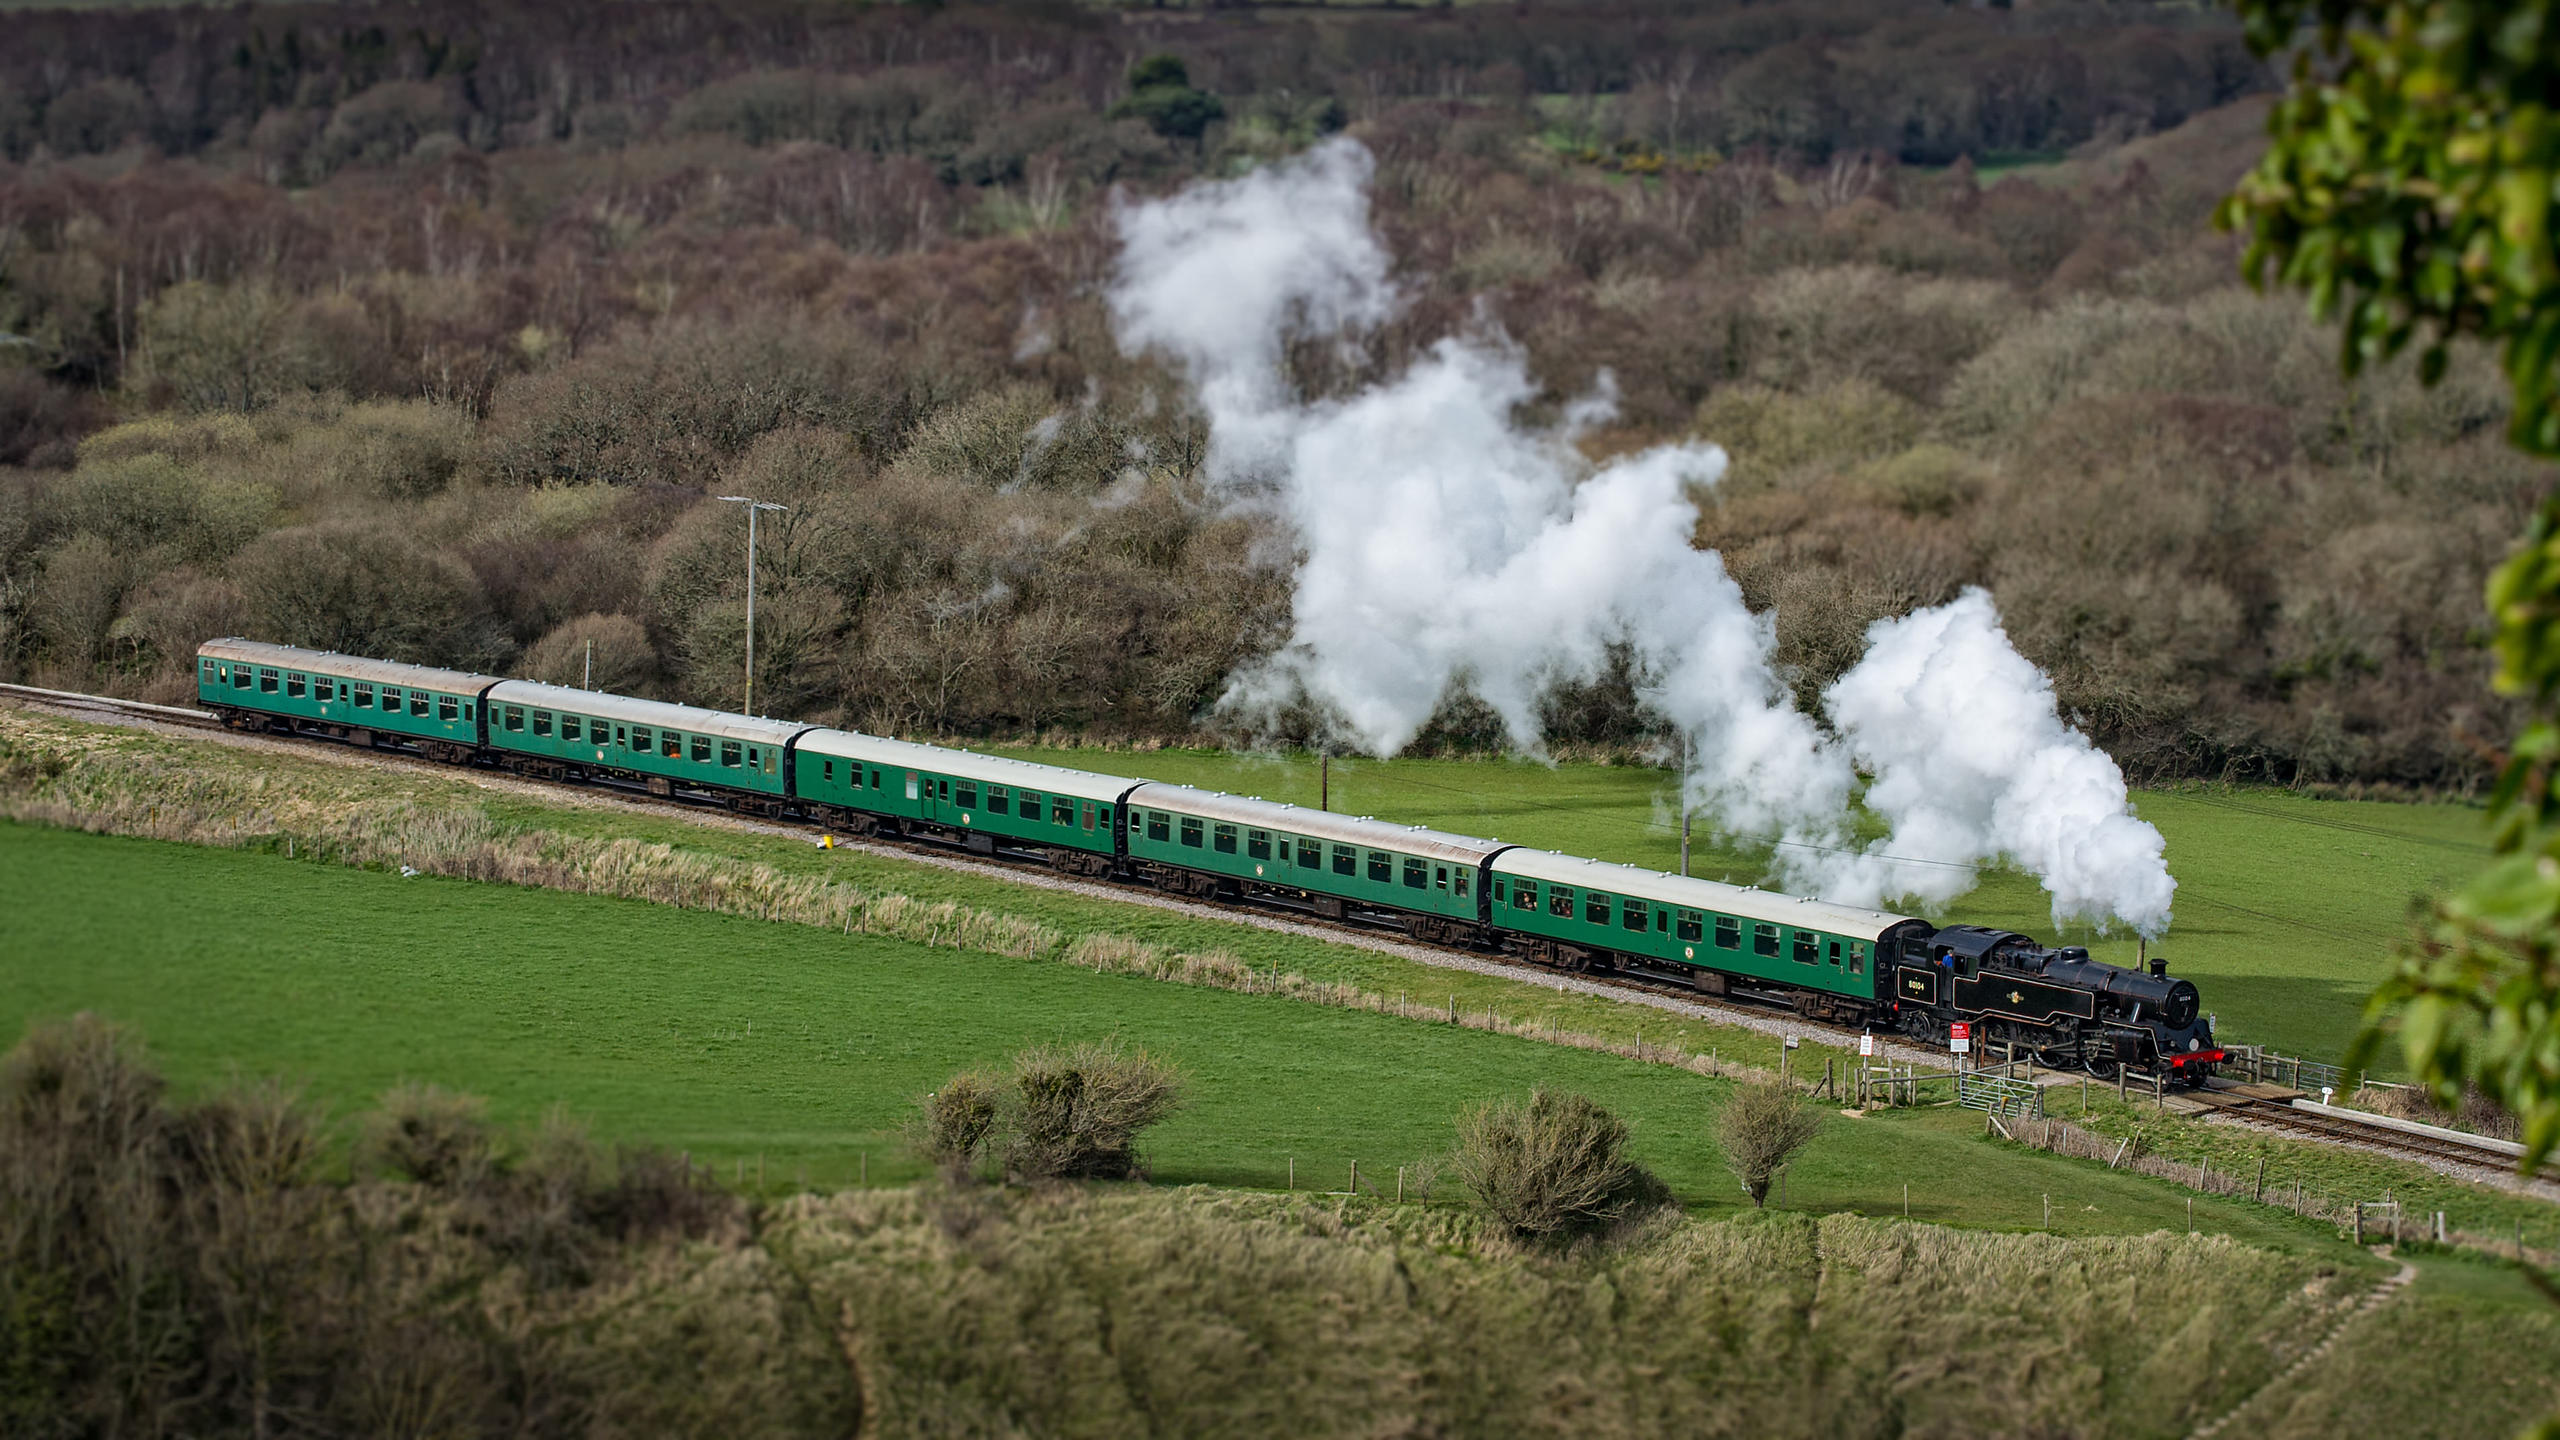 Aerial View of Swanage Railway Steam Train with classic steam Pattern